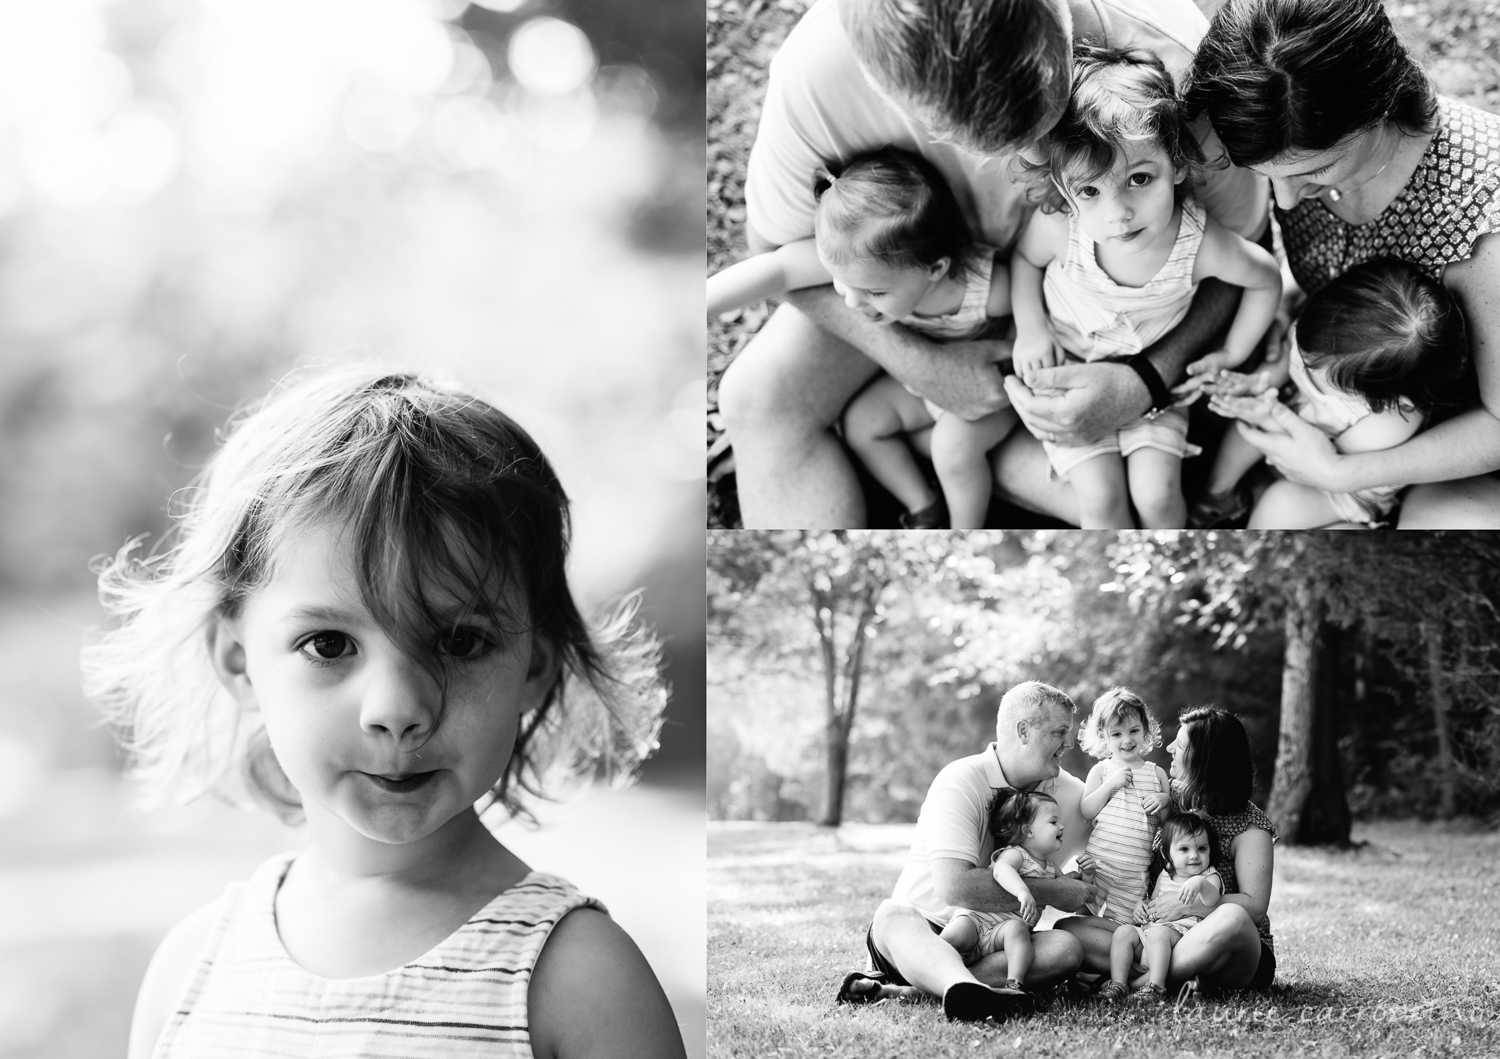 parkfamilysession_blog13-2.jpg